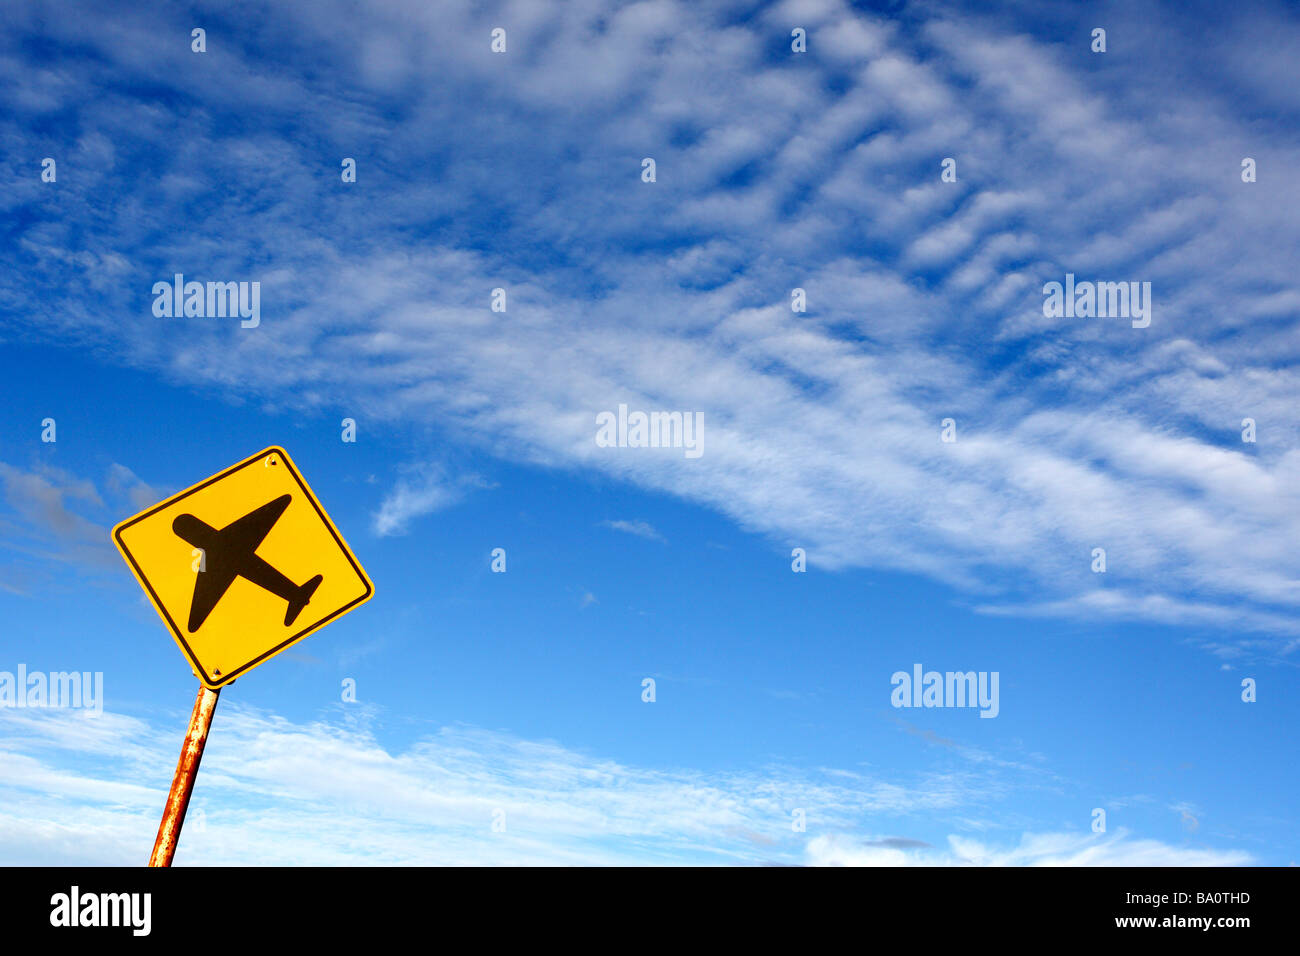 Airplane sign against blue sky - Stock Image